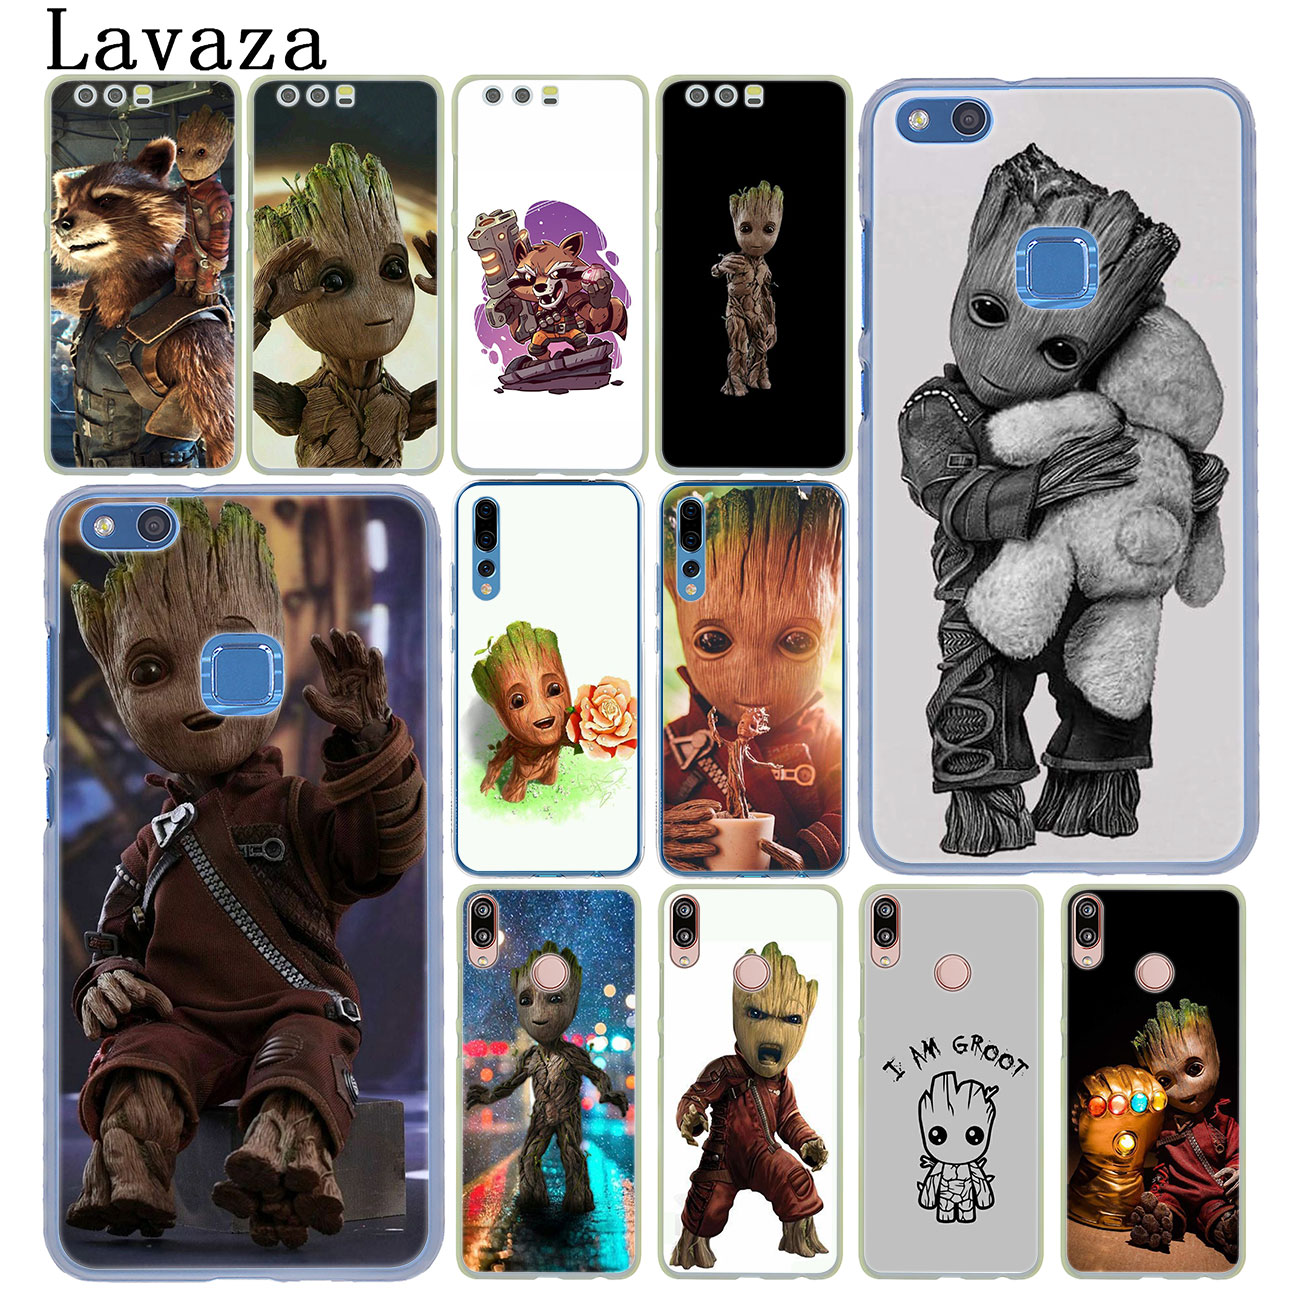 Lavaza Guardians of the for Galaxy Marvel <font><b>Case</b></font> for Huawei Y9 Y7 Y6 Prime 2019 2018 <font><b>Honor</b></font> 20 10 8C 8X 8 9X <font><b>9</b></font> <font><b>Lite</b></font> 7C 7X 7A Pro image